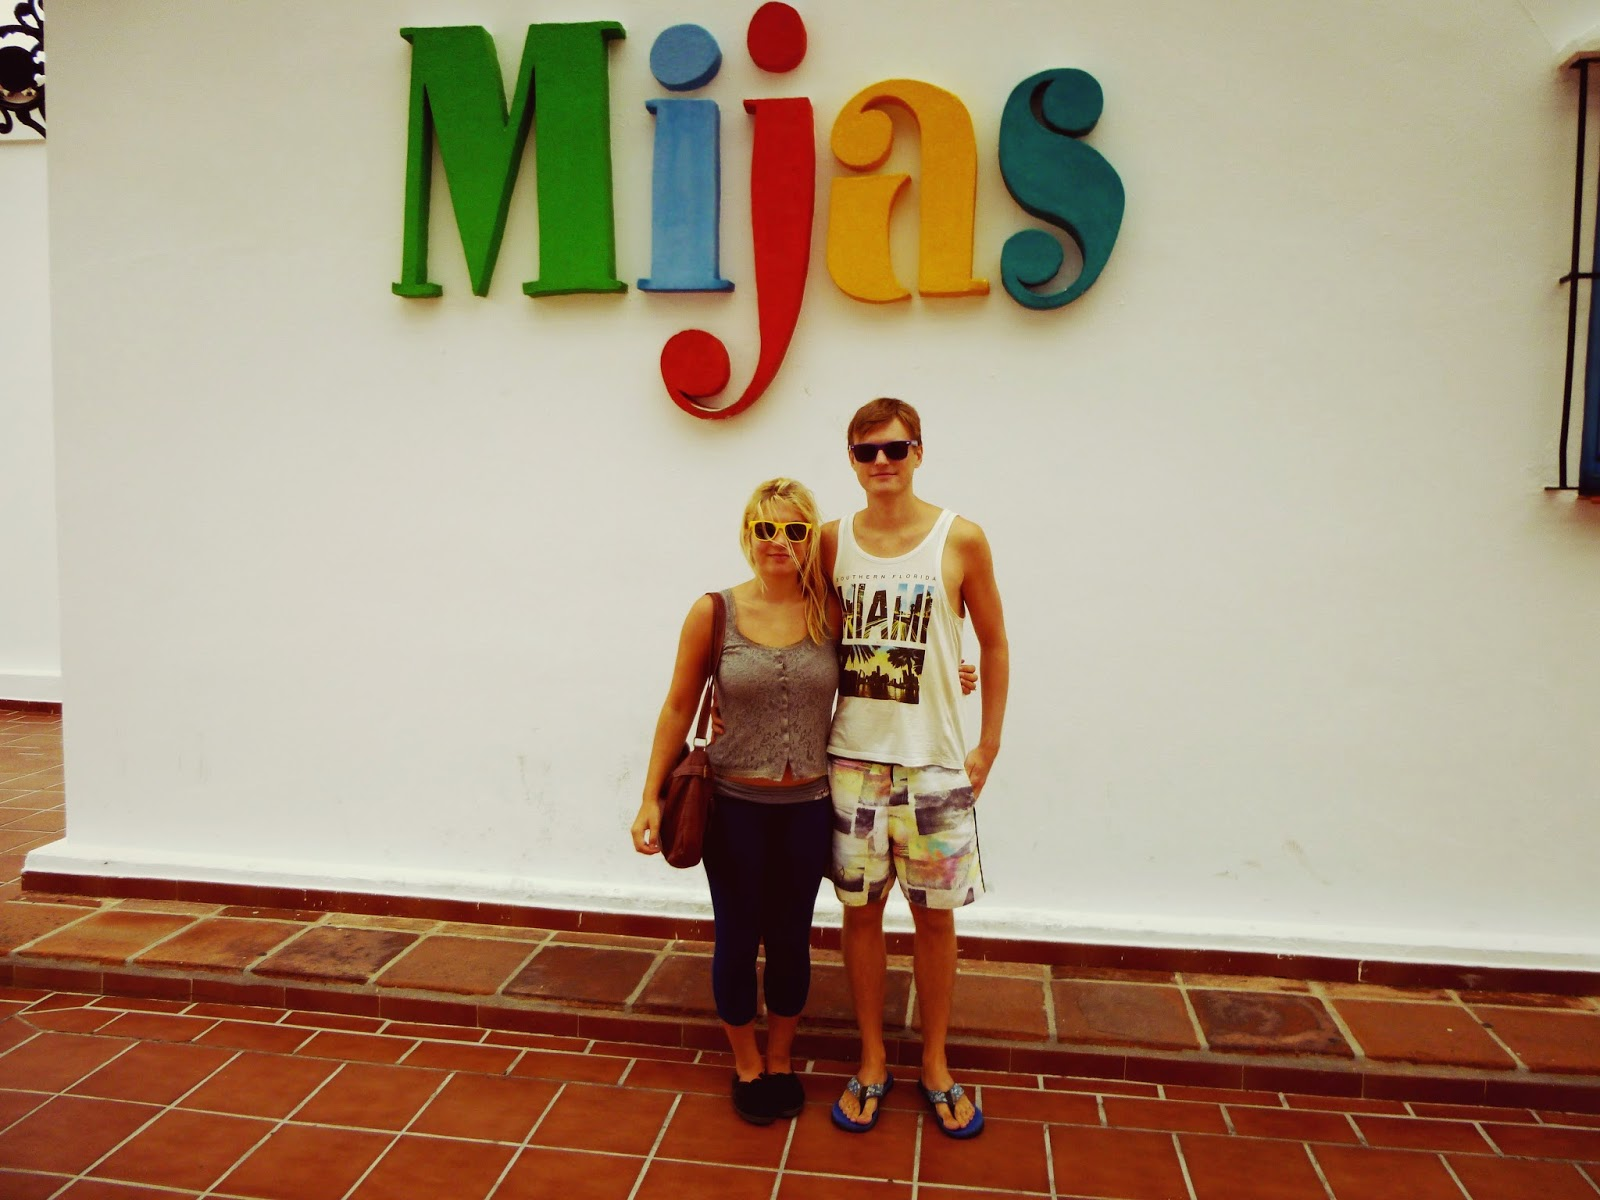 mijas sign